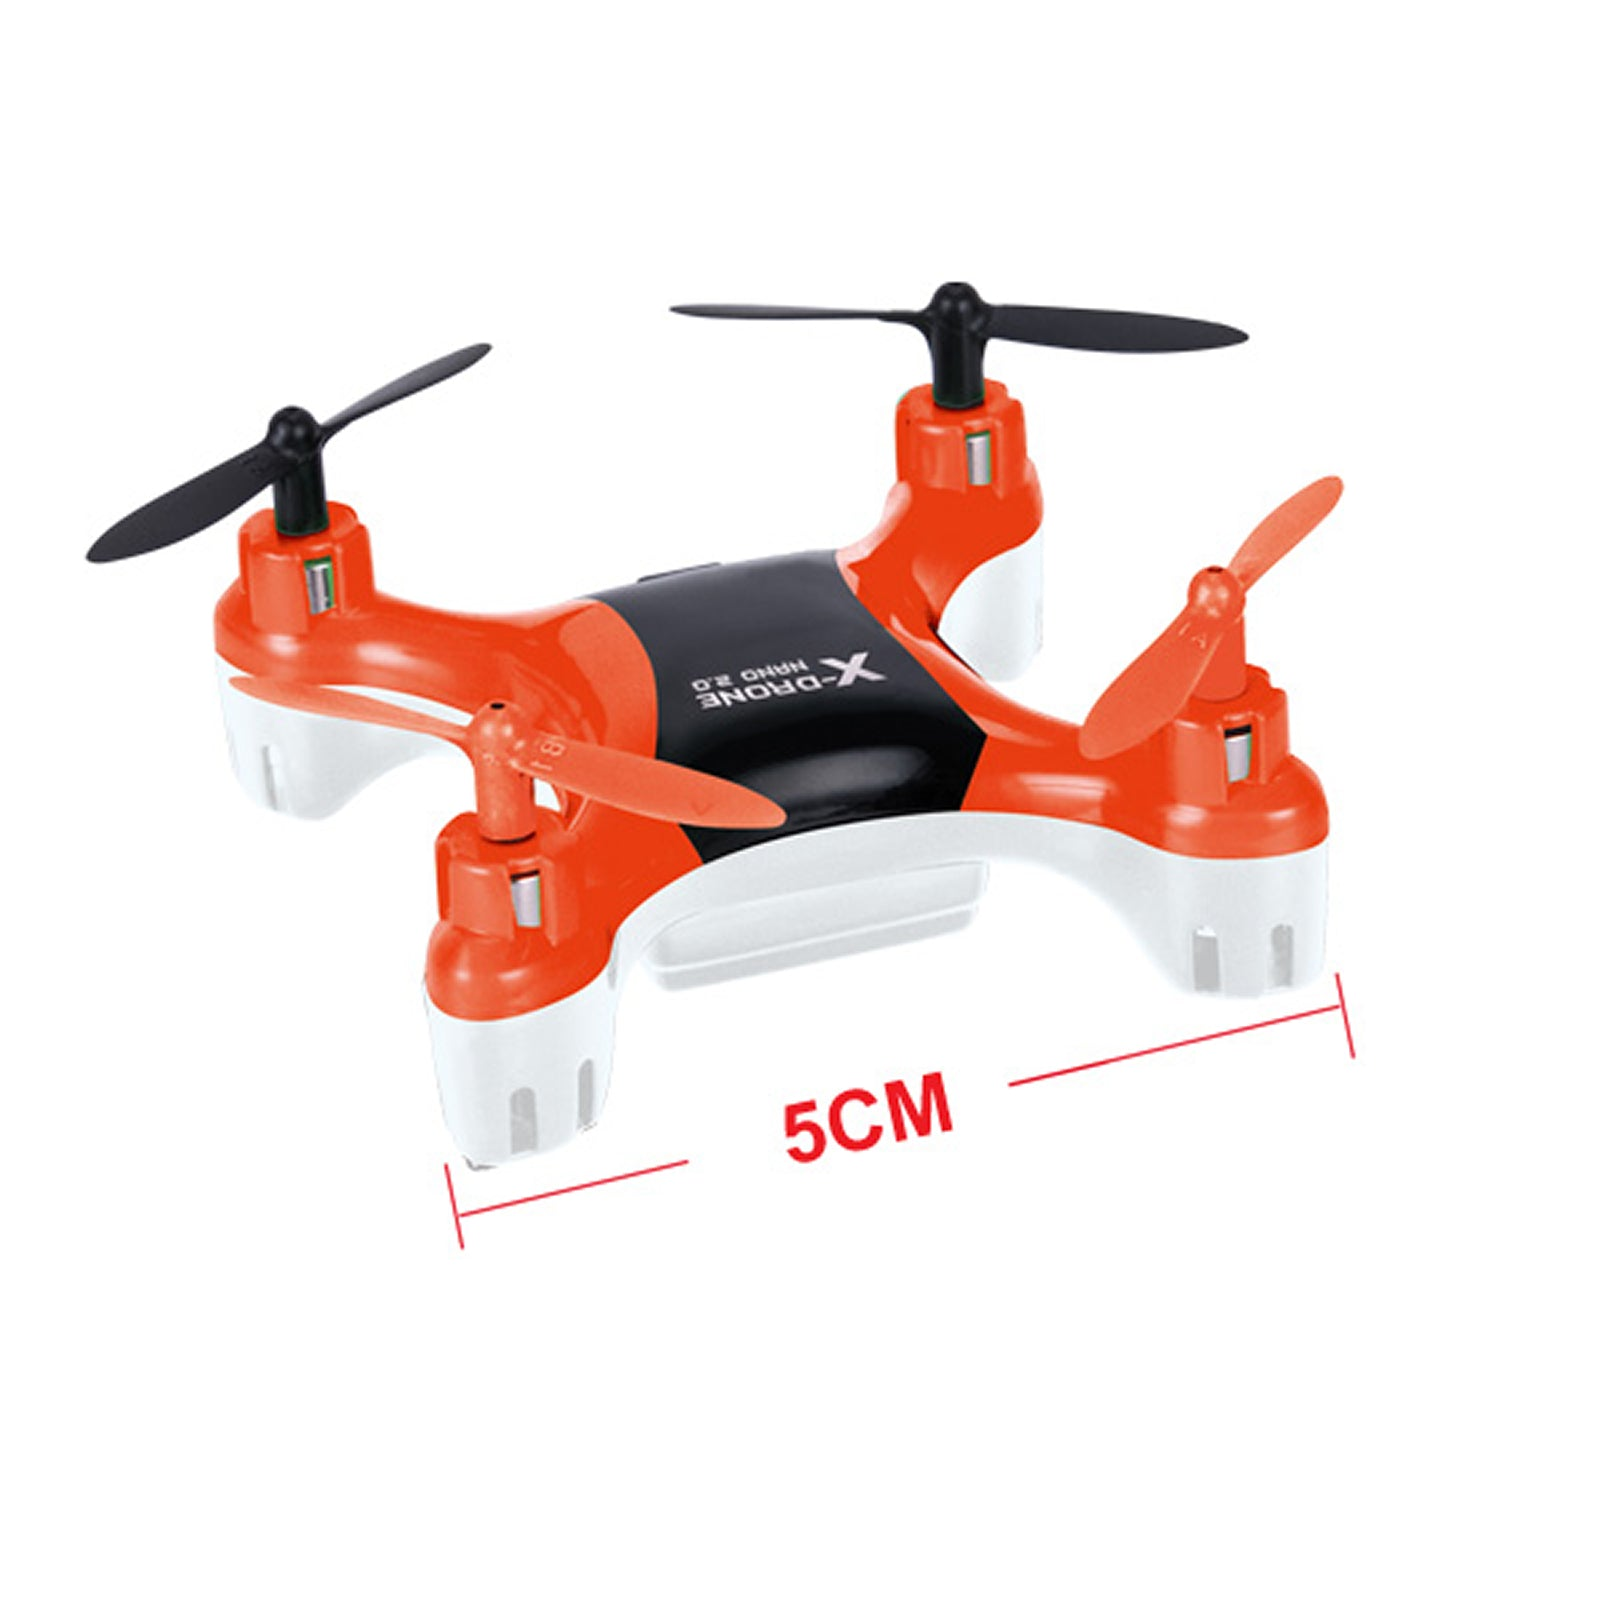 5cm Micro RC Drone - Fly the Bug!